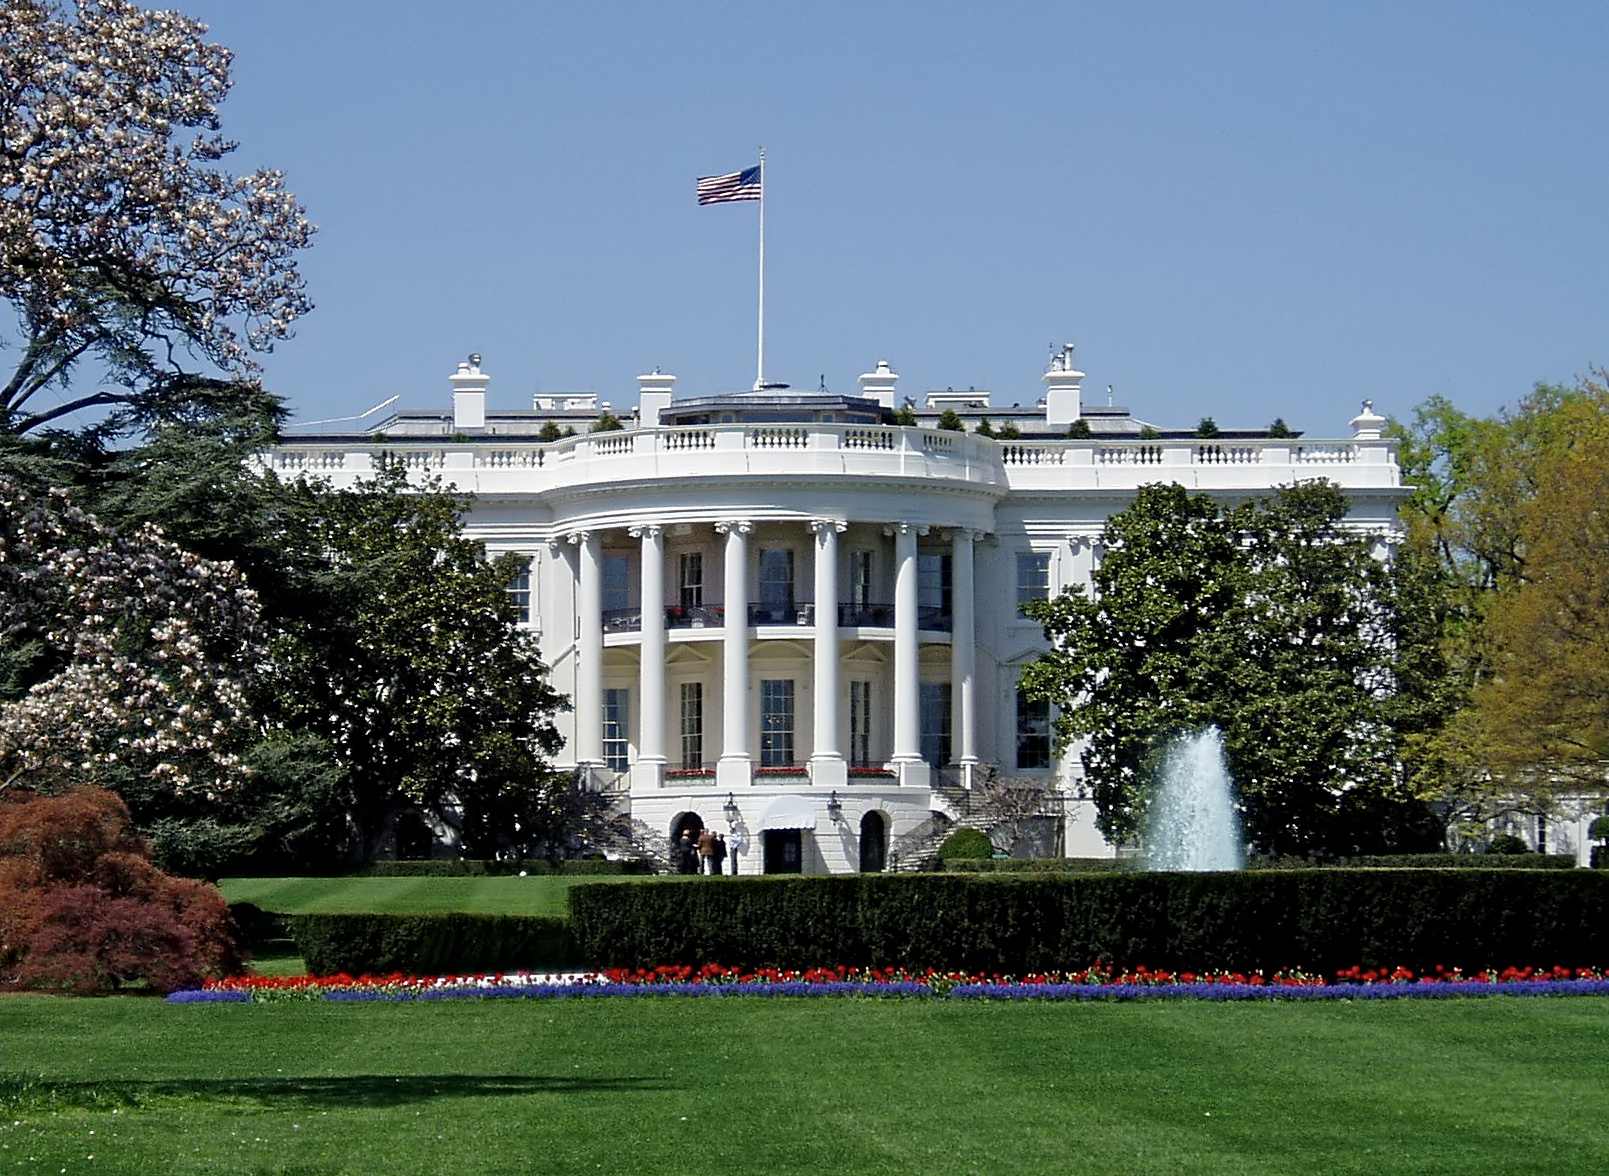 The White House, Washington DC.